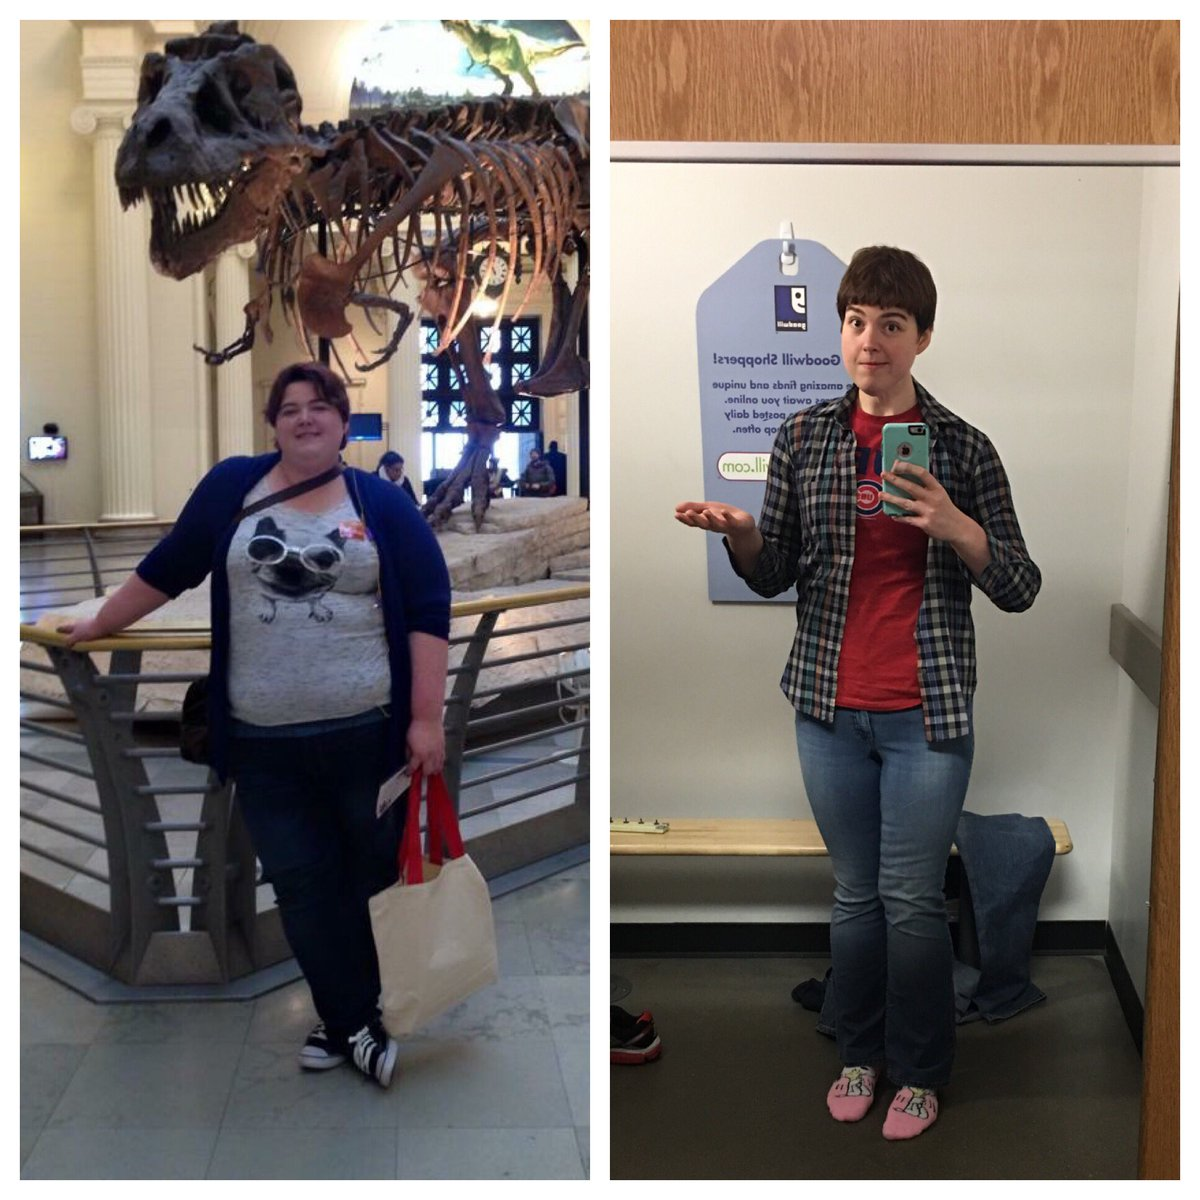 I&#39;m 1/4th of past Sam! 2yrs in the #wellness journey (Size 32 to 8). BONUS: my jeans were 44¢. #goals #fitness #exercise #happy #goodwill<br>http://pic.twitter.com/wiuhmoSC3j